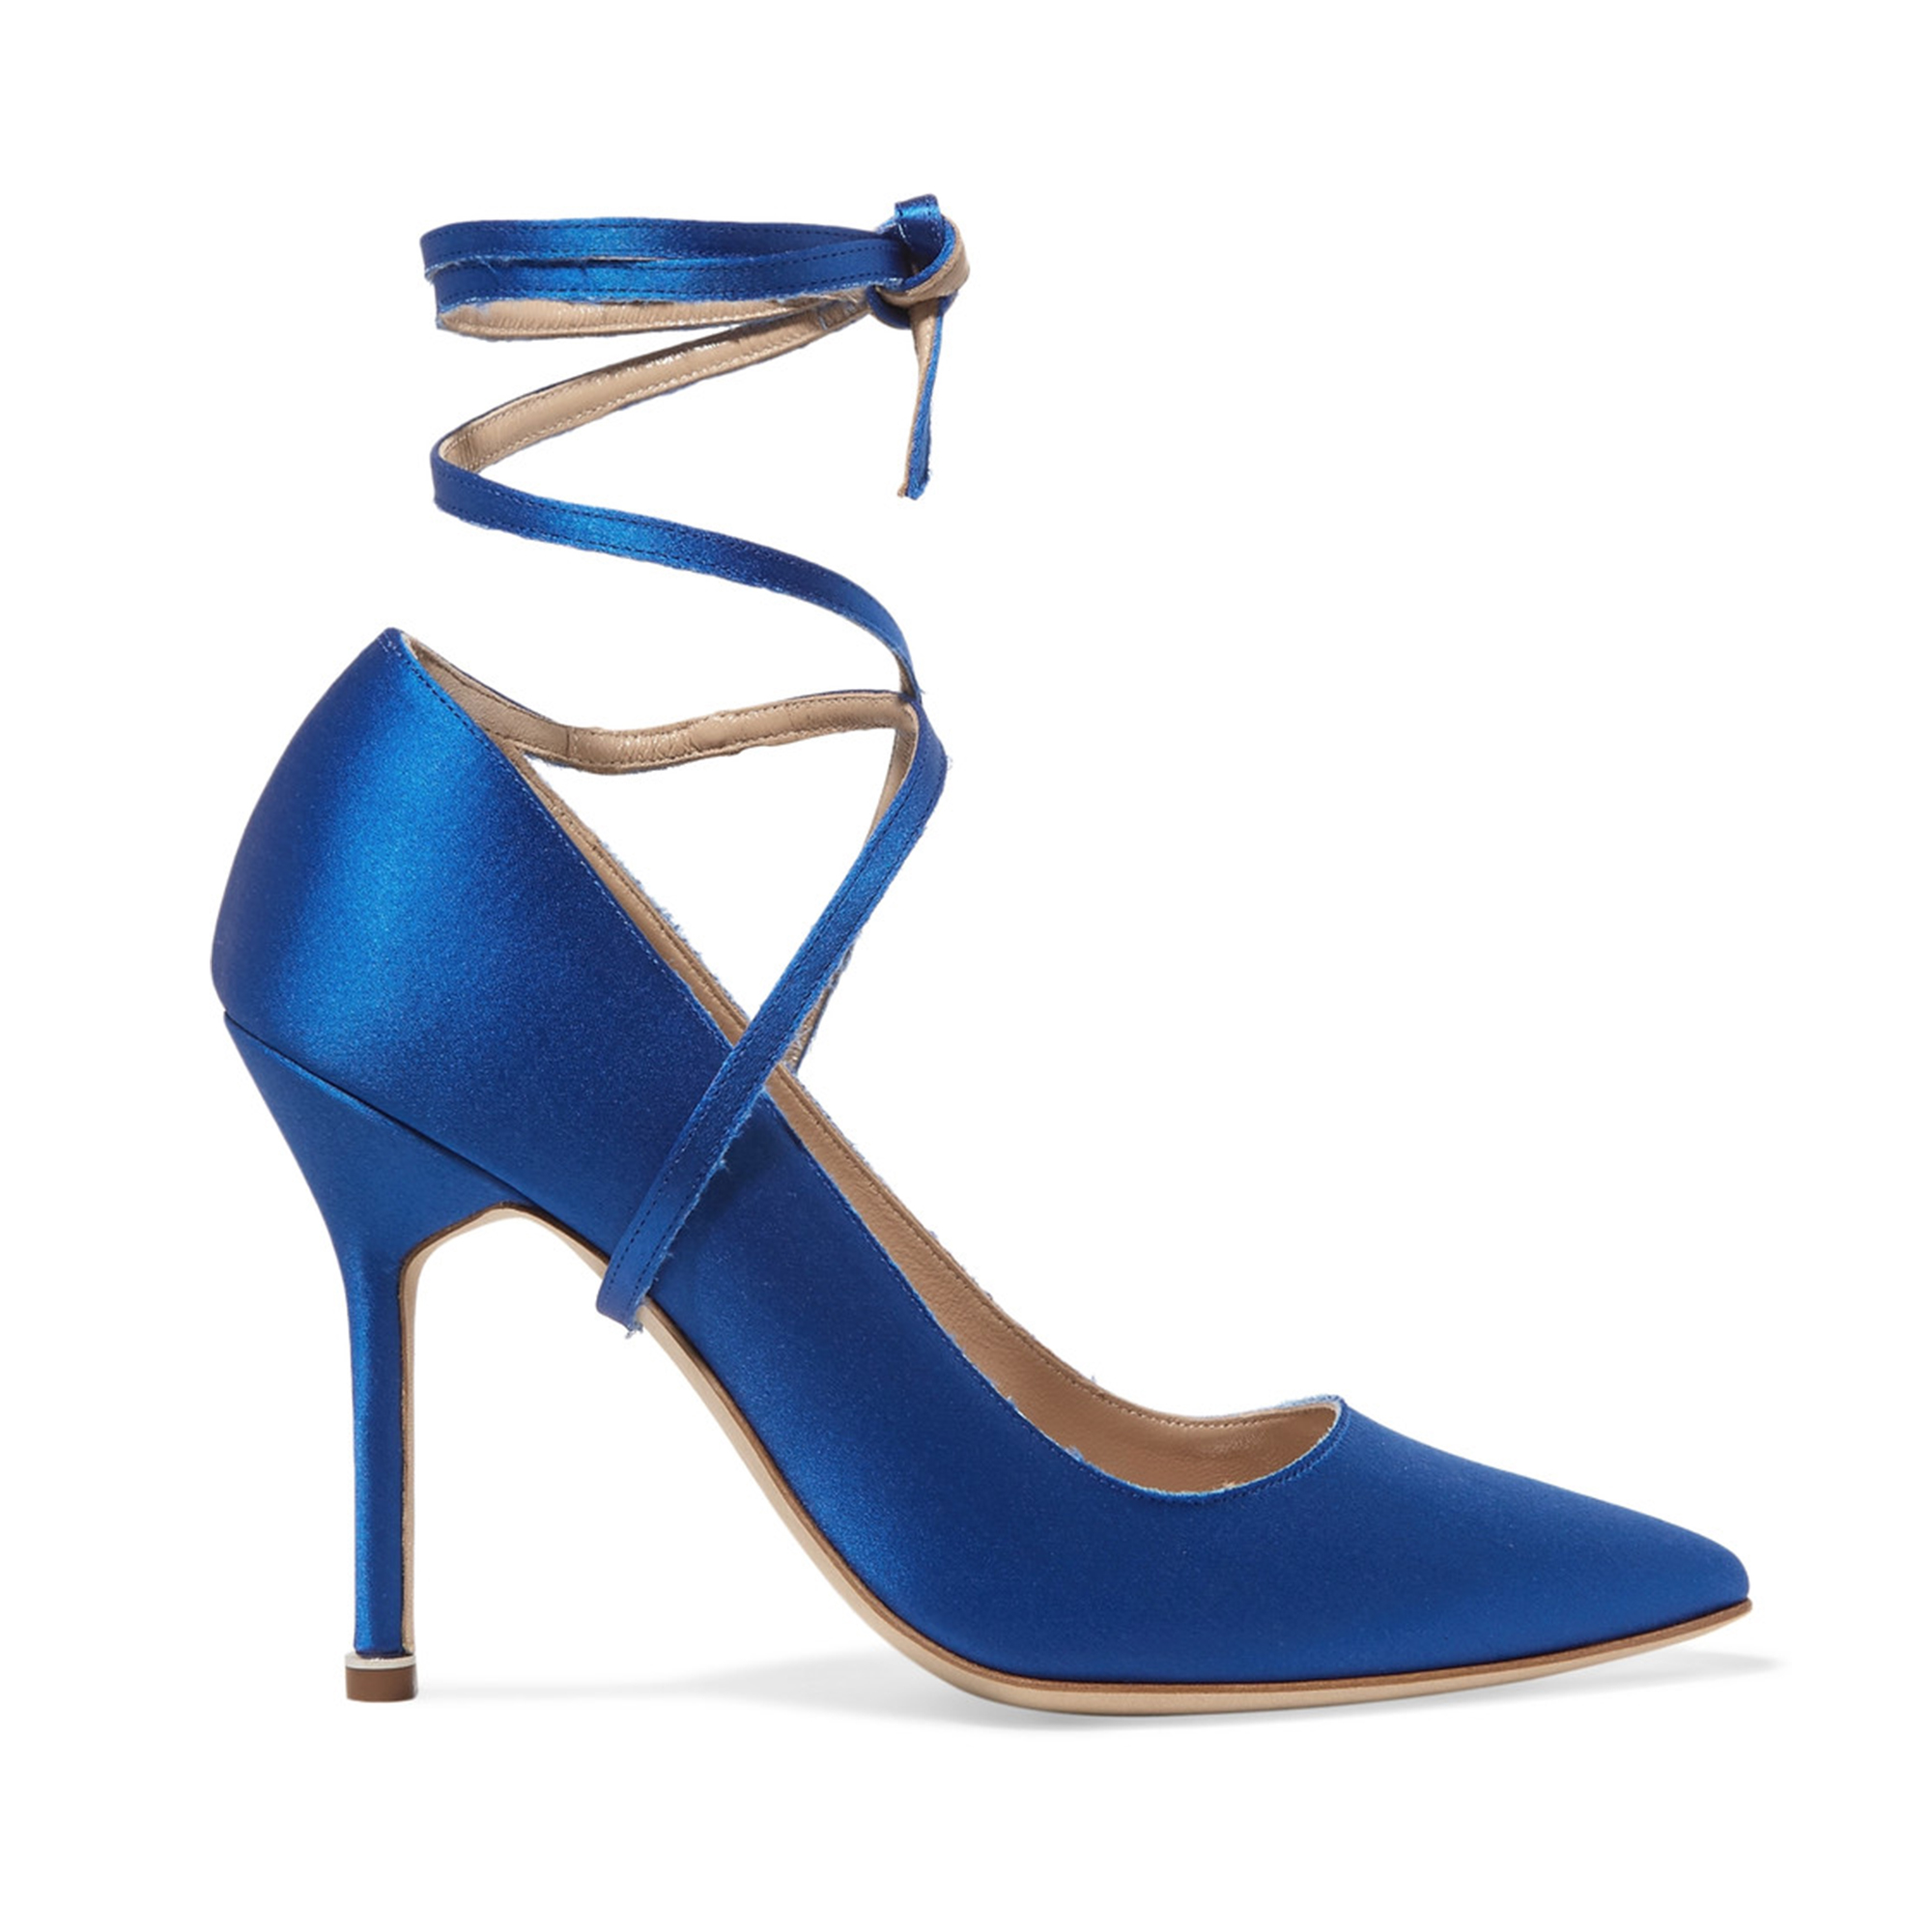 Vetements x manolo blahnik heels are here and you can for Who is manolo blahnik